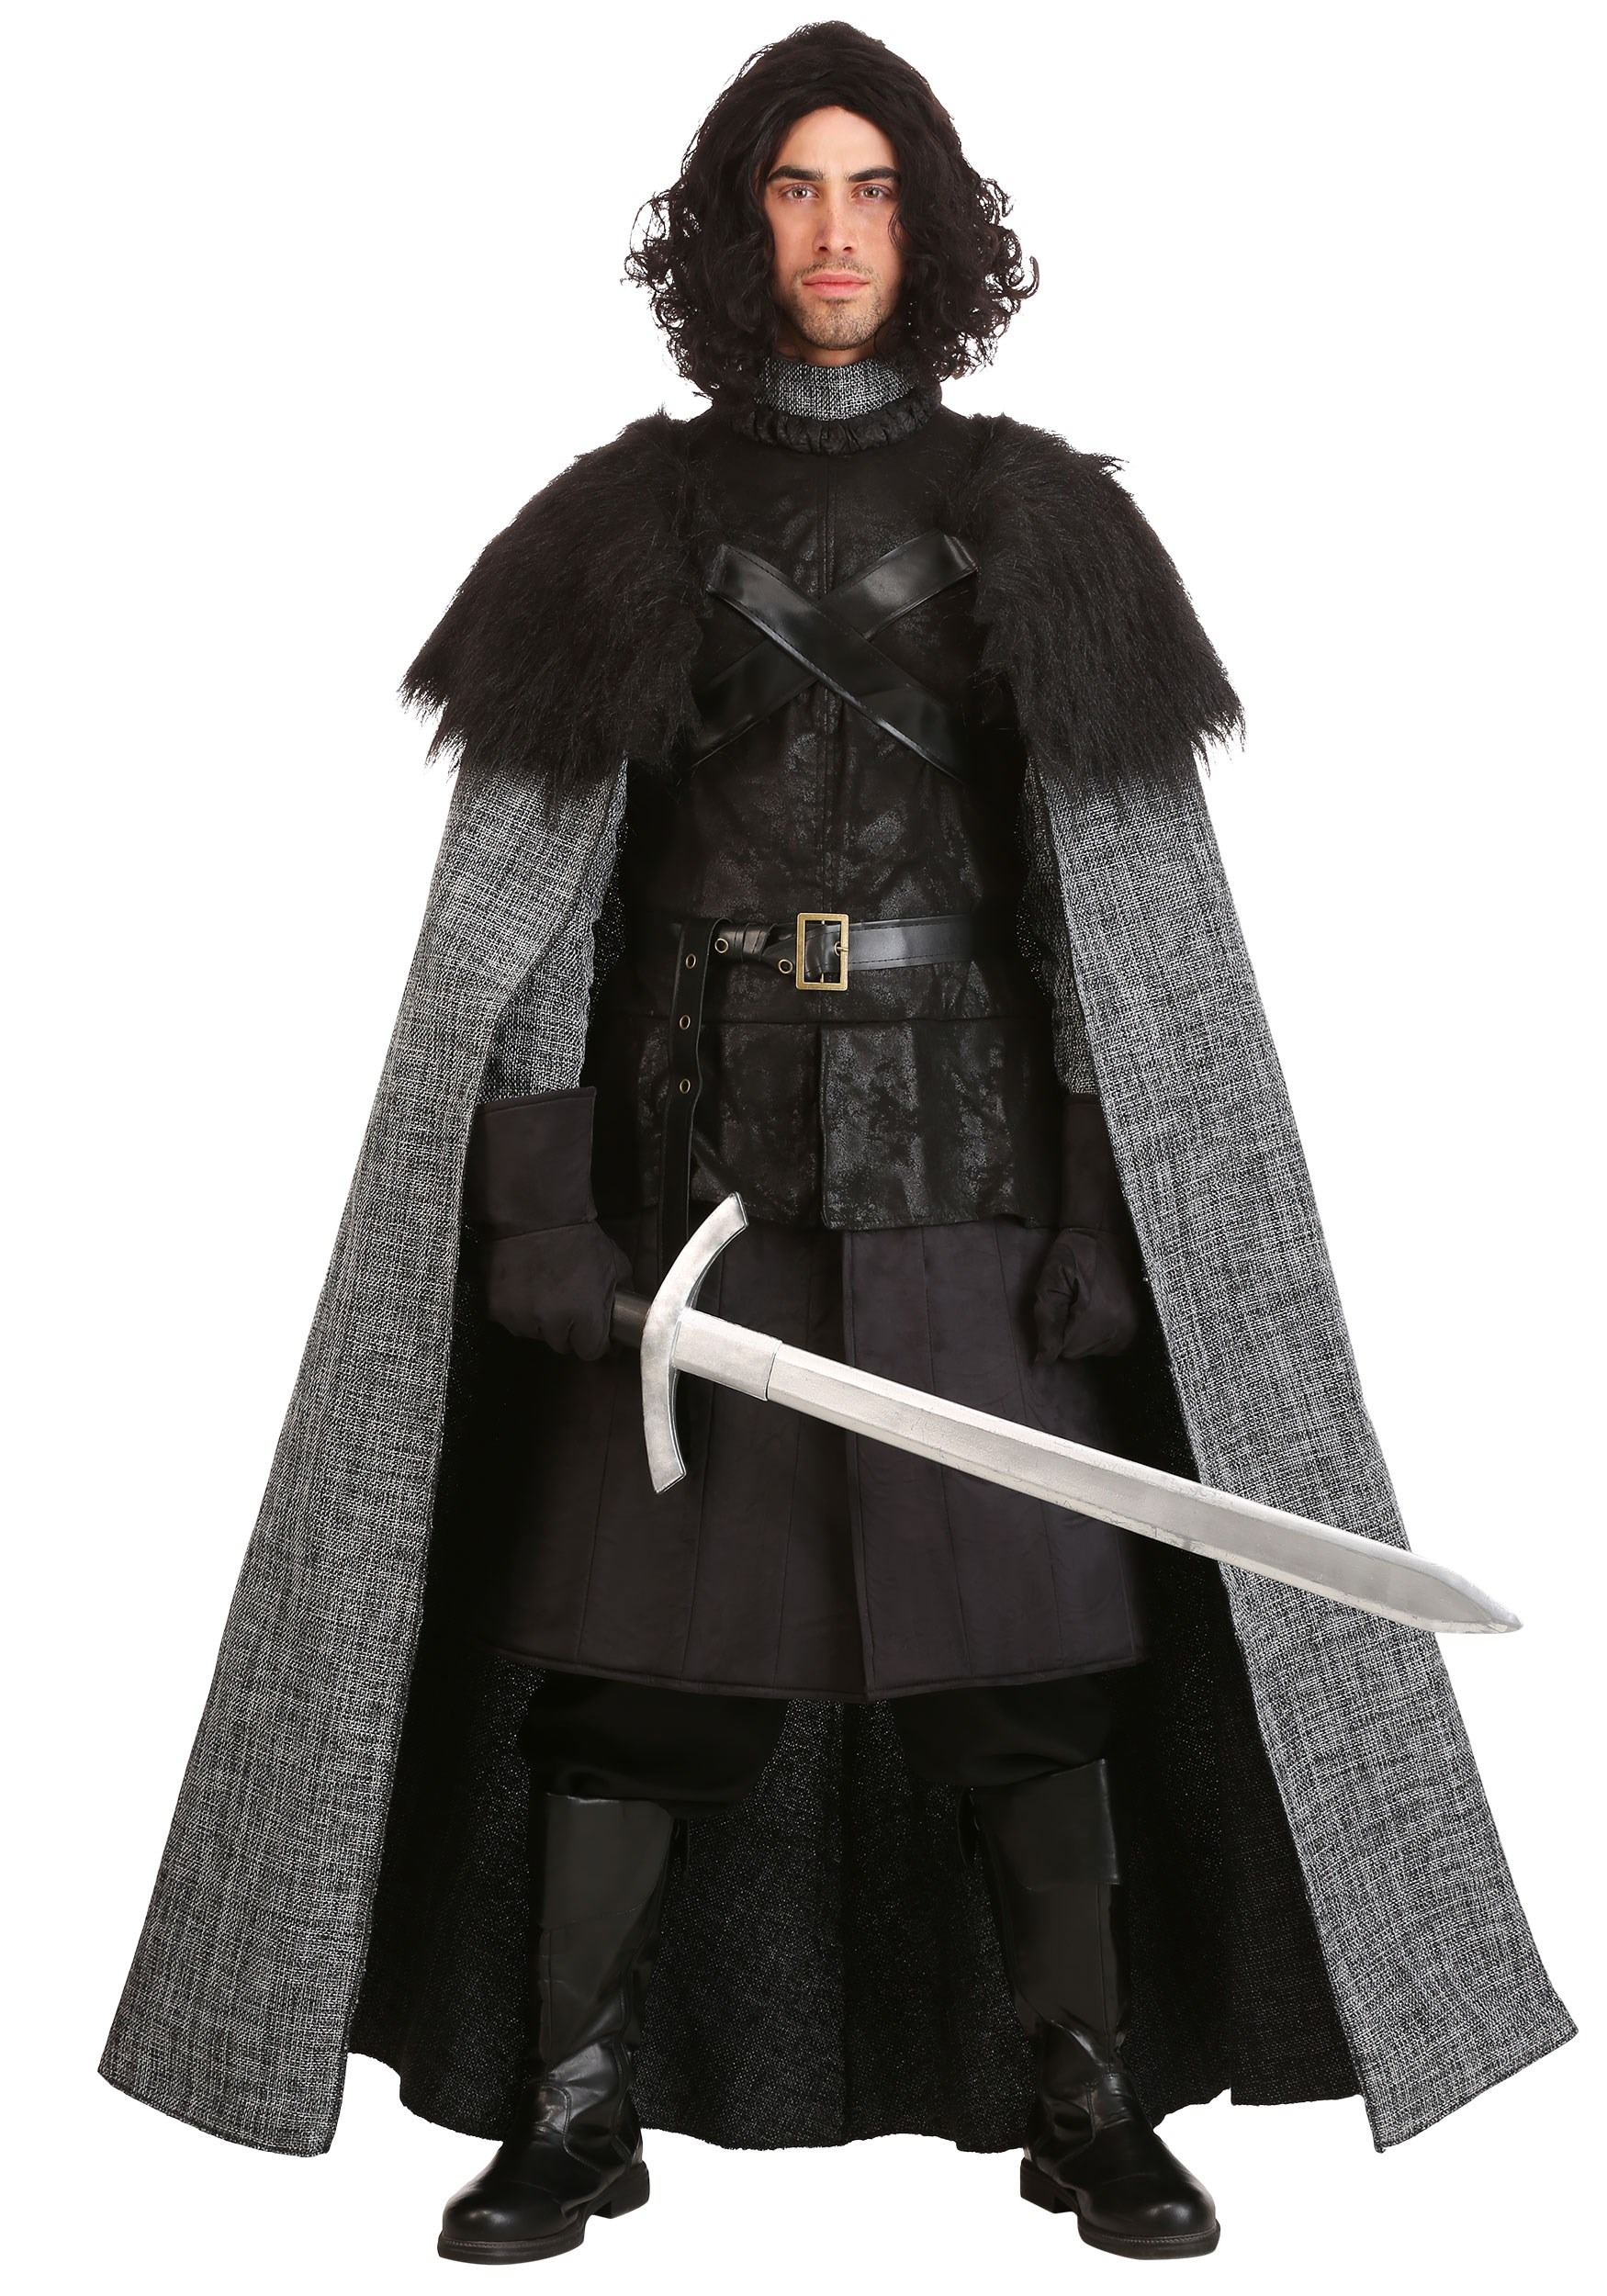 DARK NORTHERN KING COSTUME